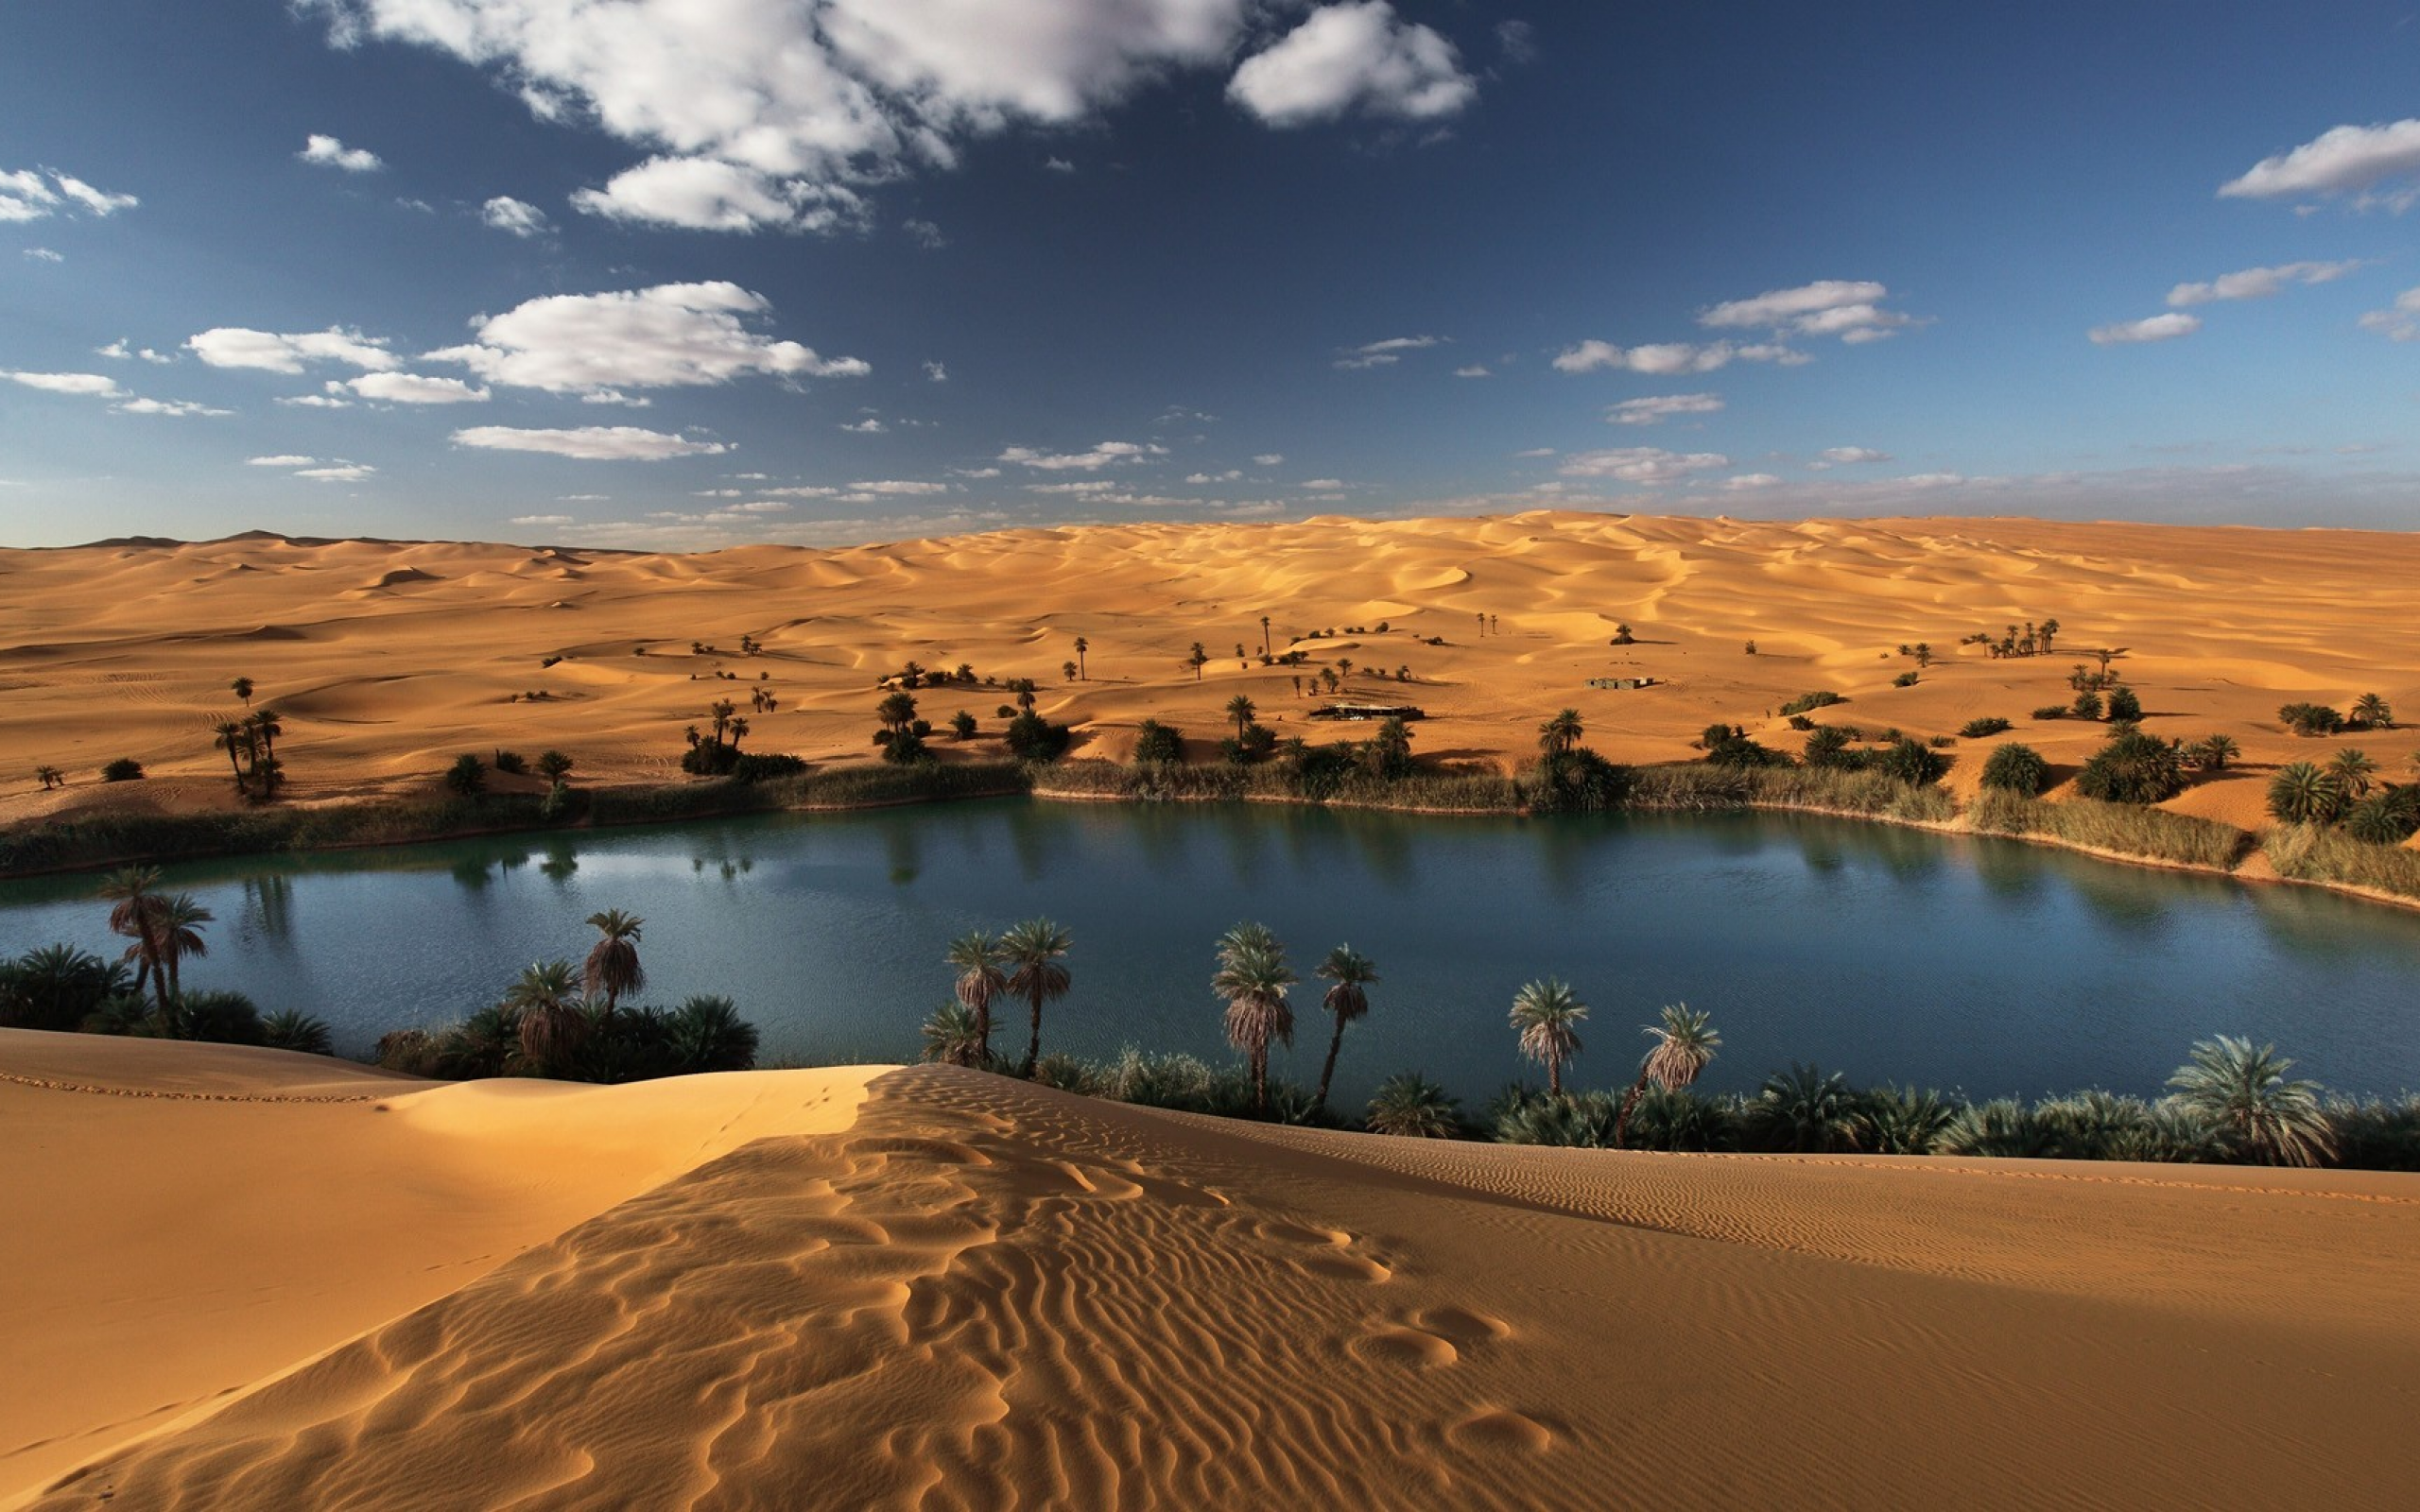 587 desert hd wallpapers | background images - wallpaper abyss